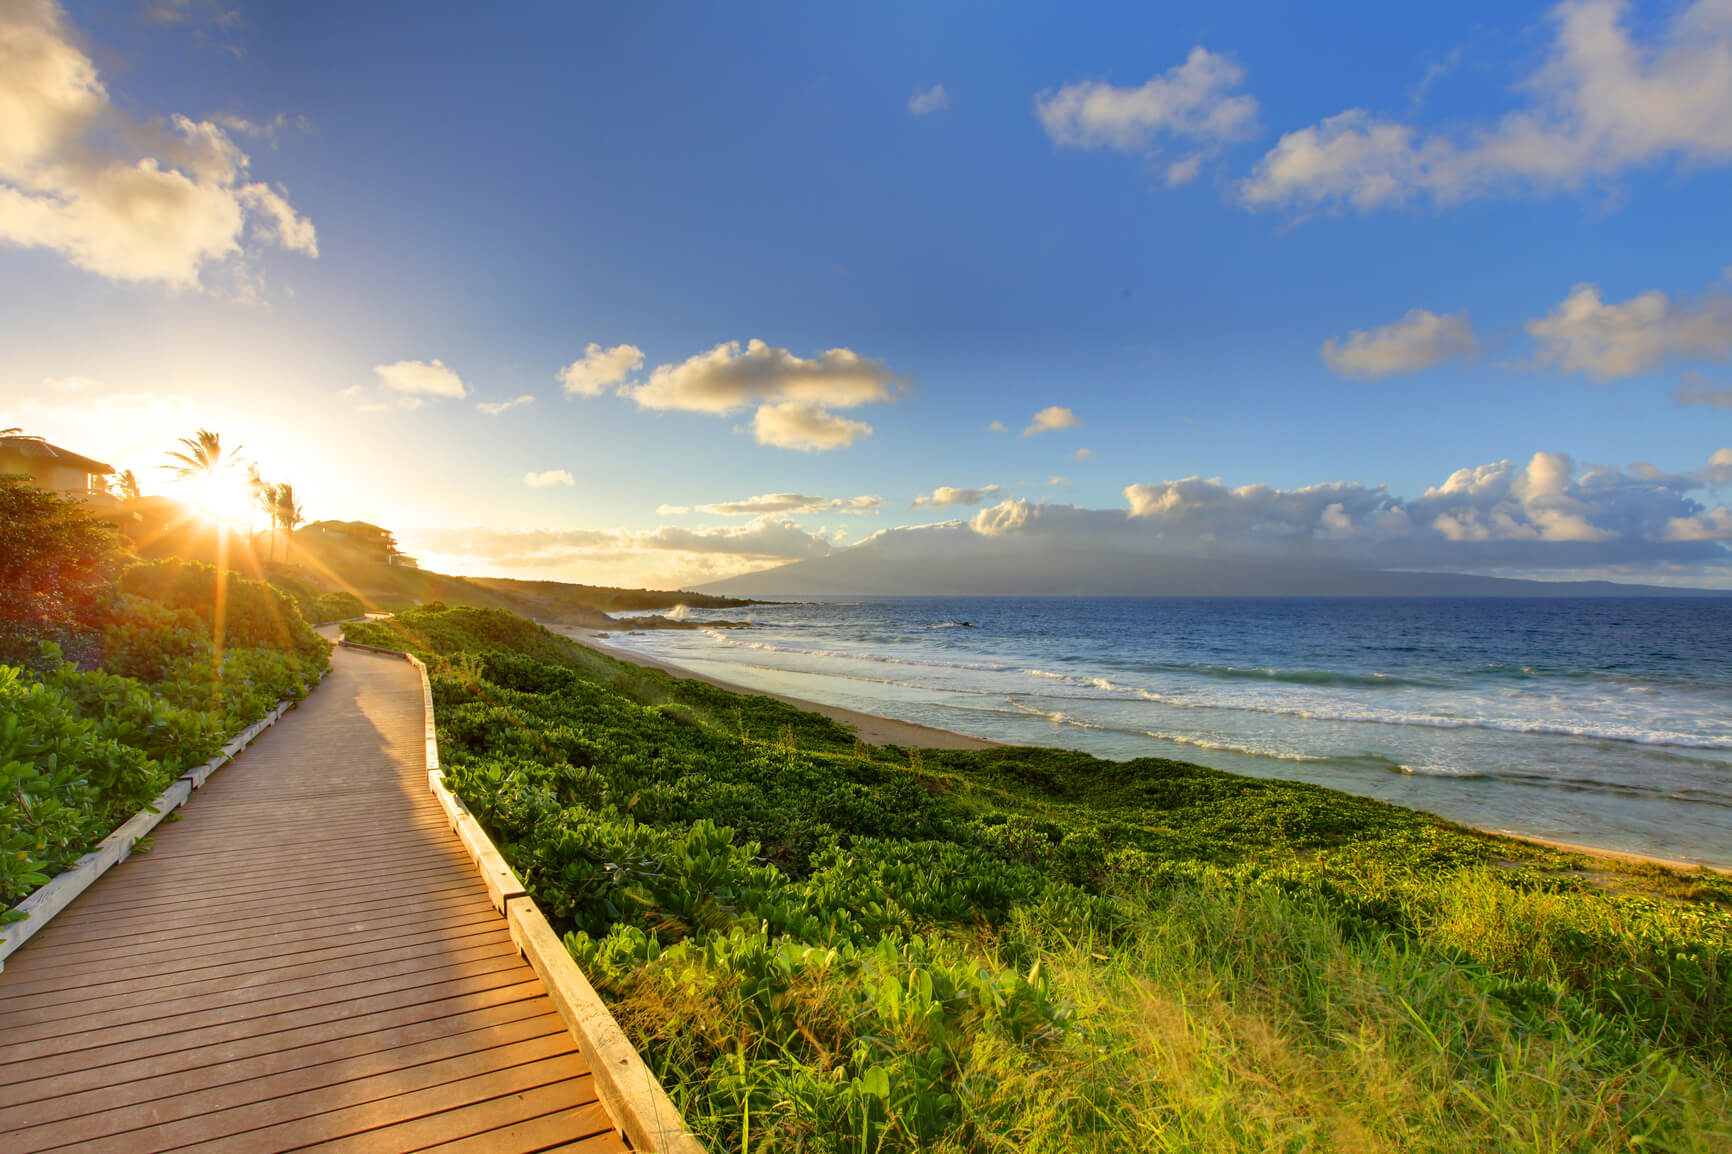 HOT!! Denver, Colorado or Houston, Texas to Hawaii (& vice versa) for only $283 roundtrip